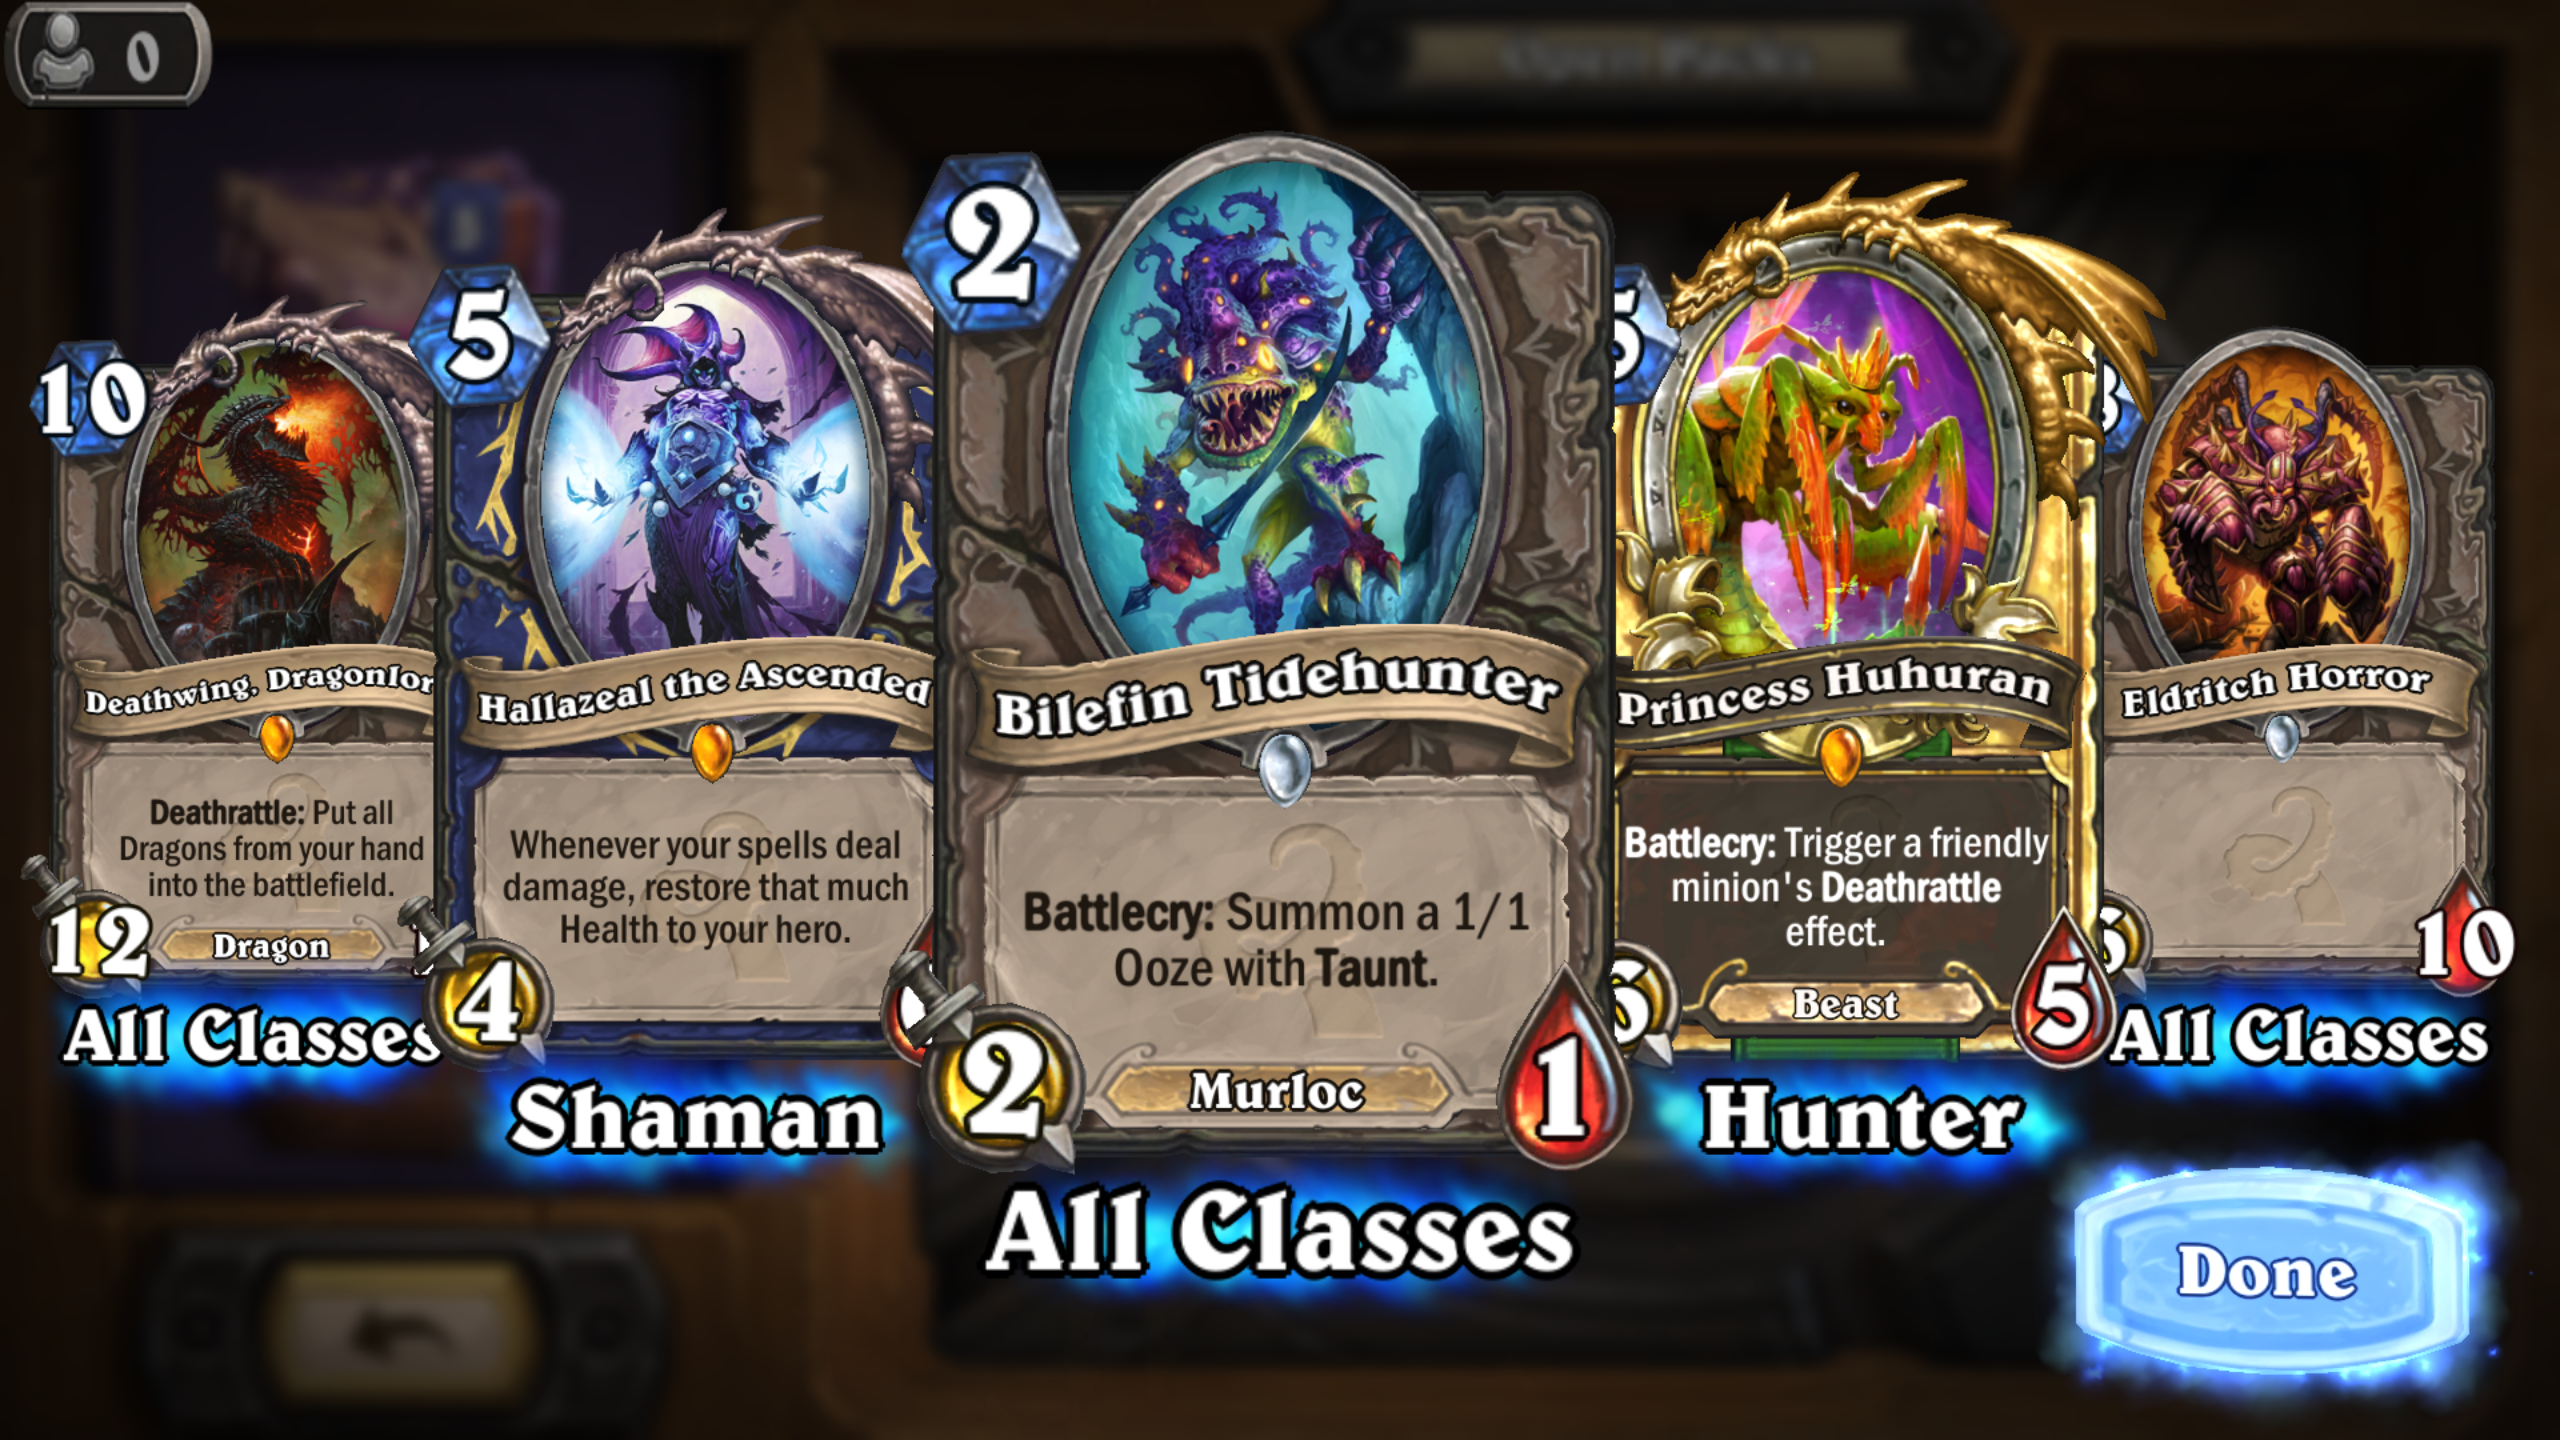 OT: How rare is it to open a pack like this in Hearthstone